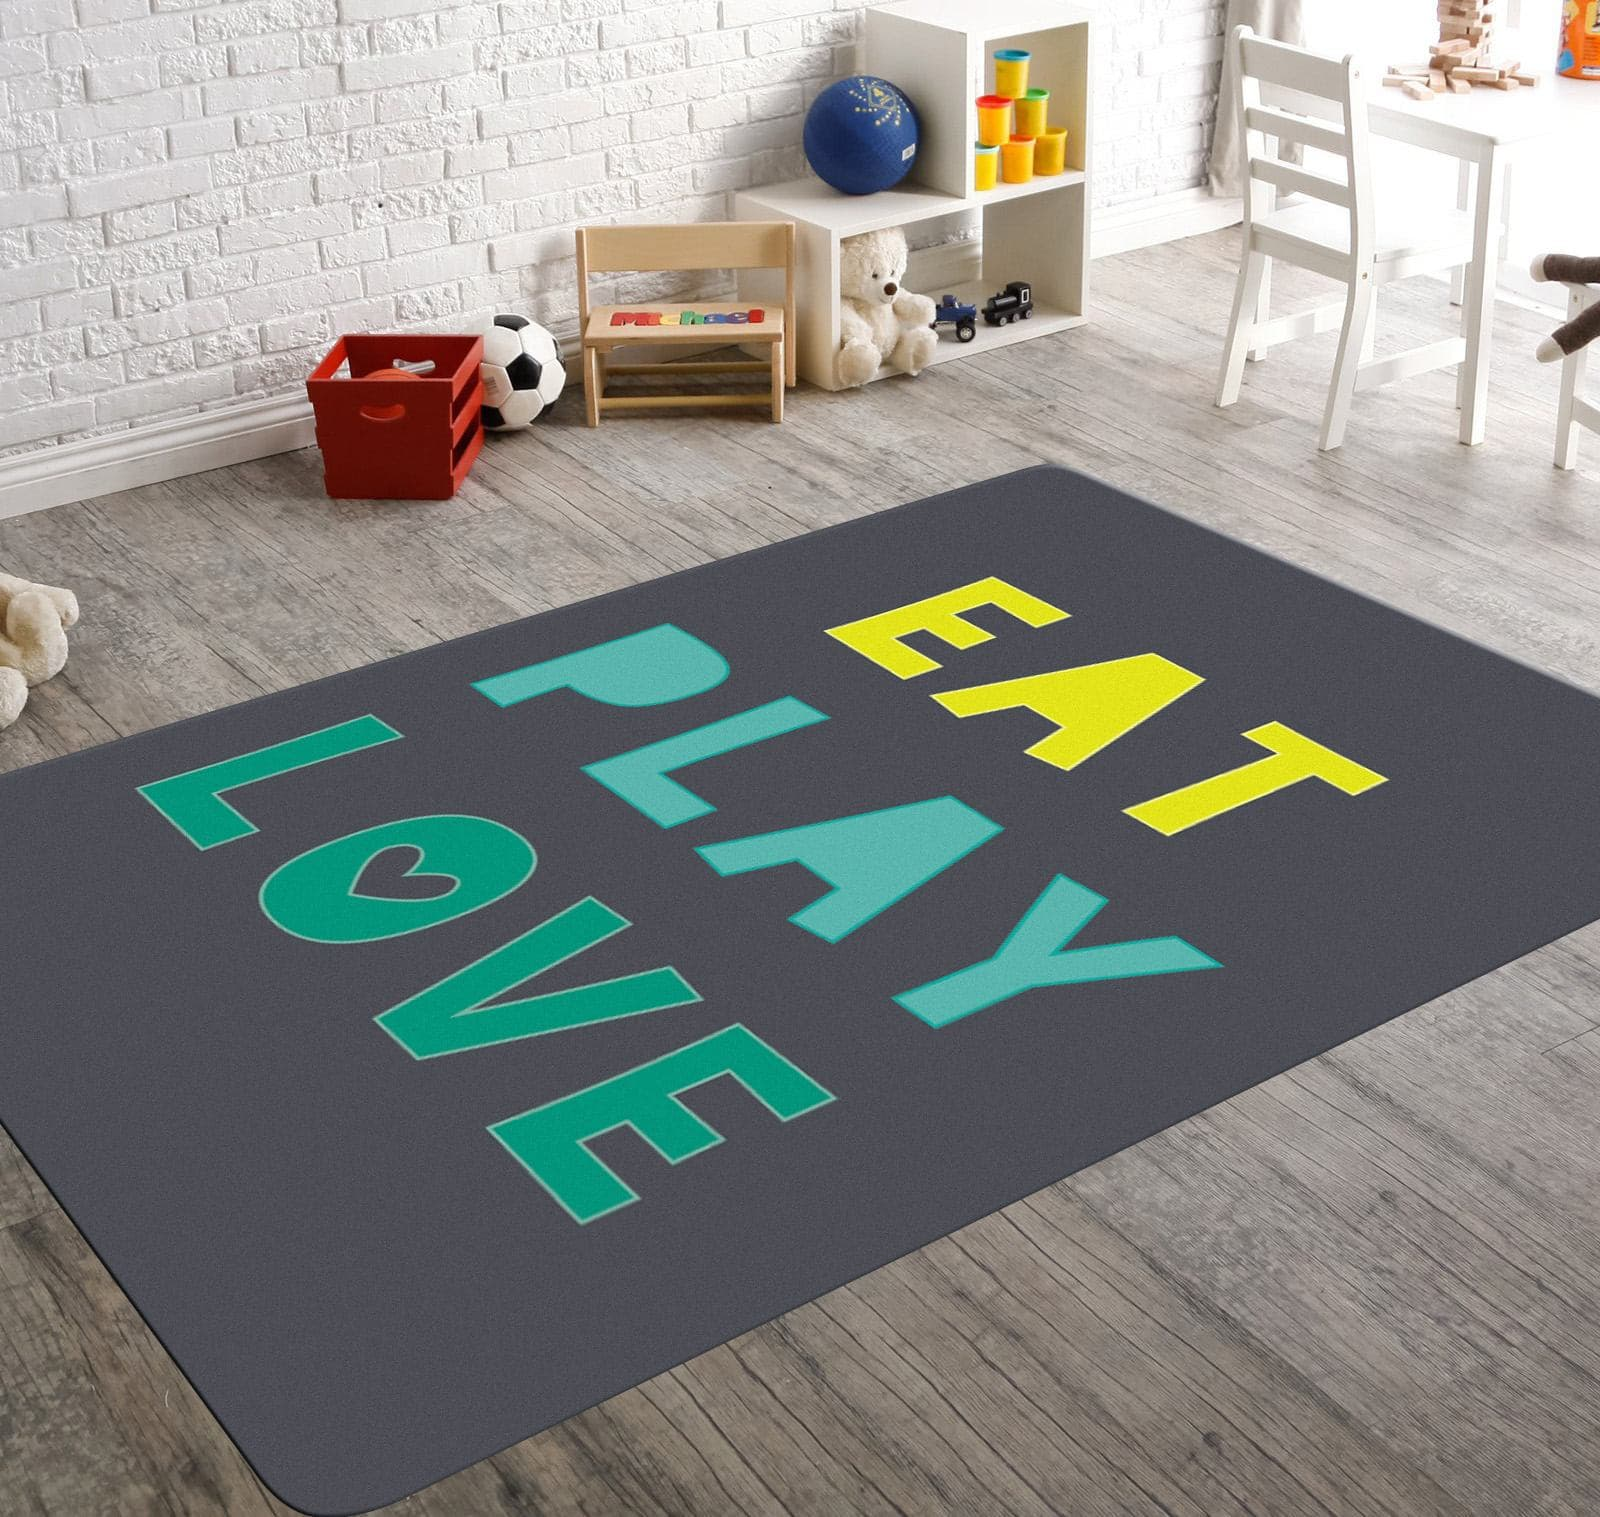 Image of: Eat Play Love Kids Room Rugs Playroom Rug Kitchen Rug Child Be Wild